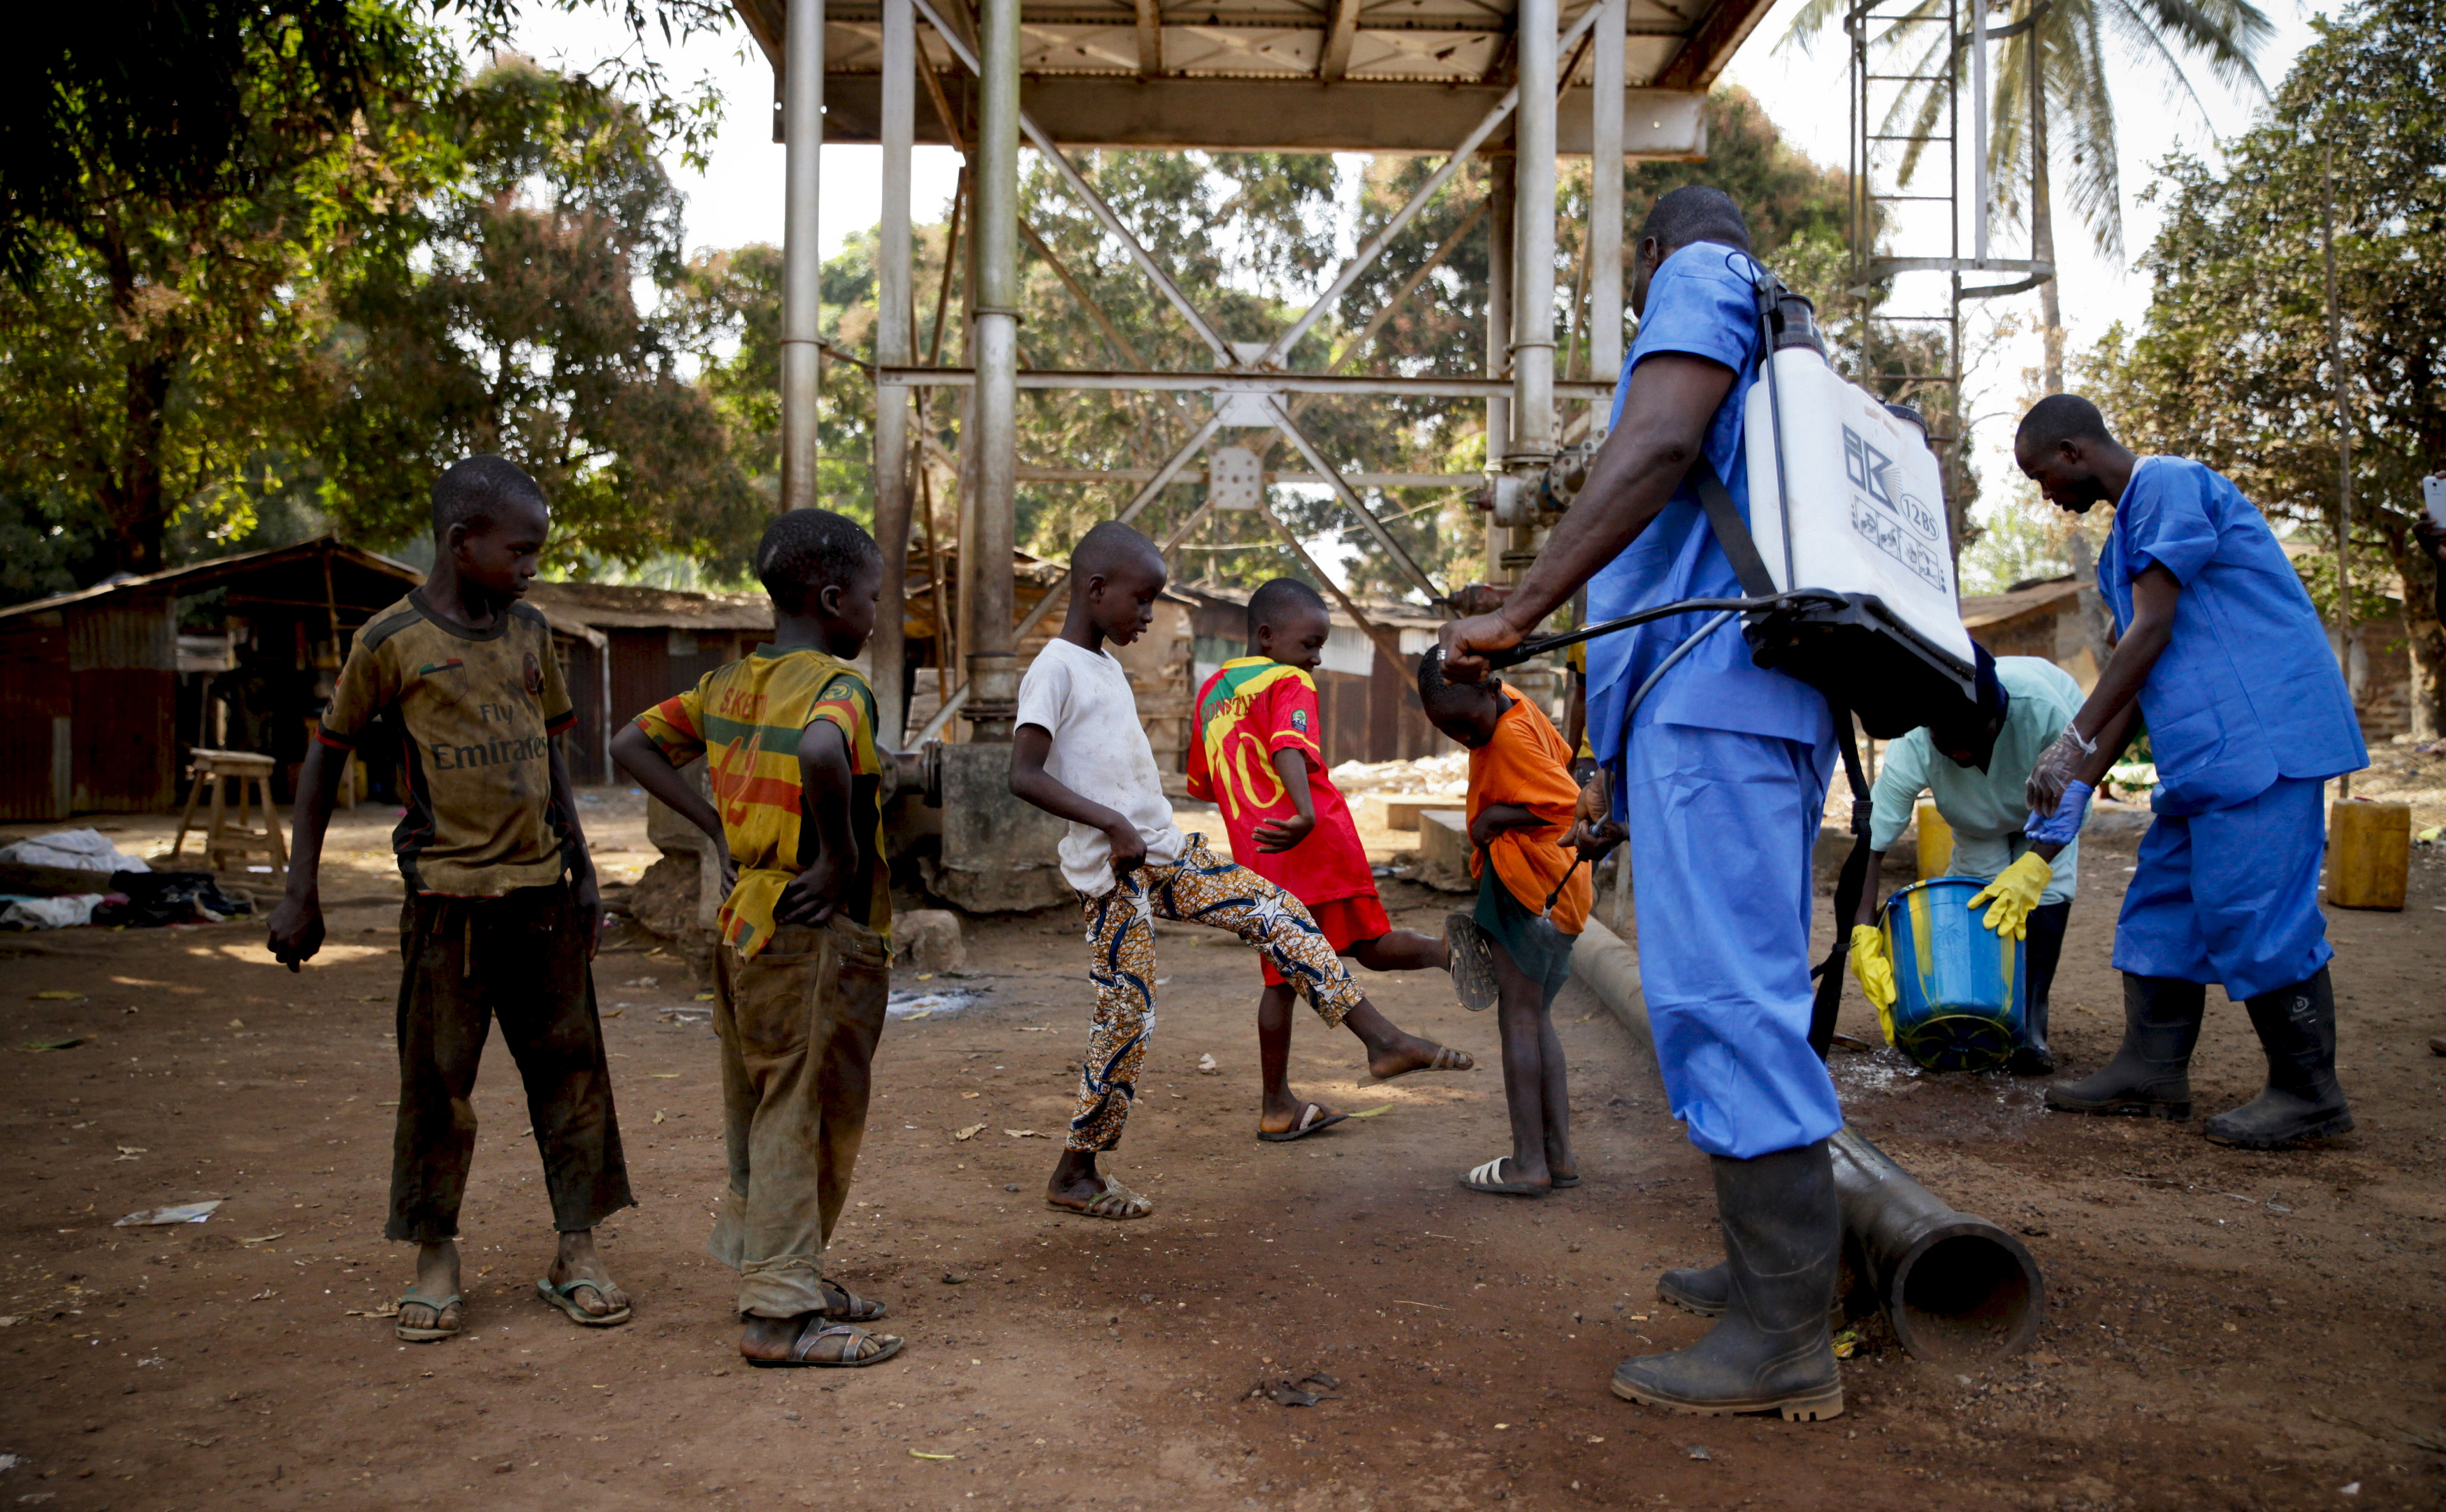 Children come forward to get their feet disinfected after a Red Cross worker explained that they are spraying bleach, and not spraying the village with the Ebola virus, in Forecariah, on January 30, 2015. REUTERS/Misha Hussain